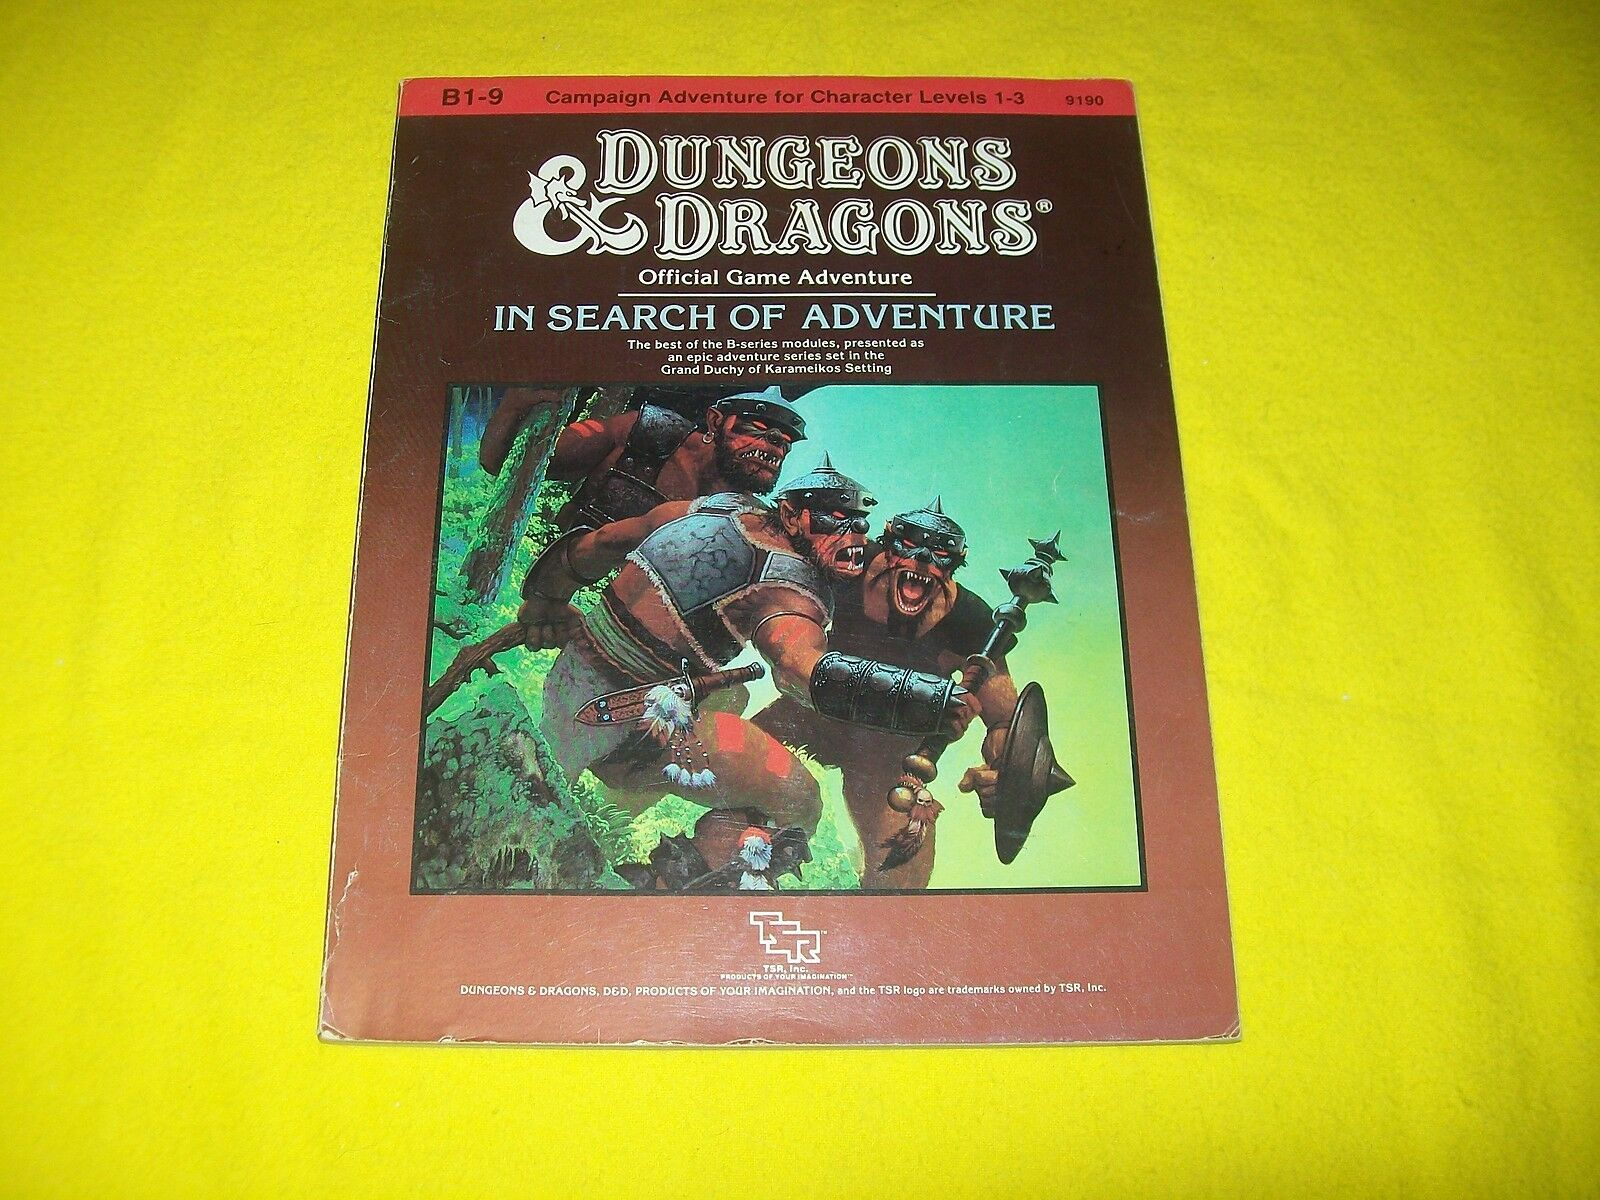 B1-9 B1-9 B1-9 IN SEARCH OF ADVENTURE DUNGEONS & DRAGONS TSR 9190 3 SUPERMODULE 007a56